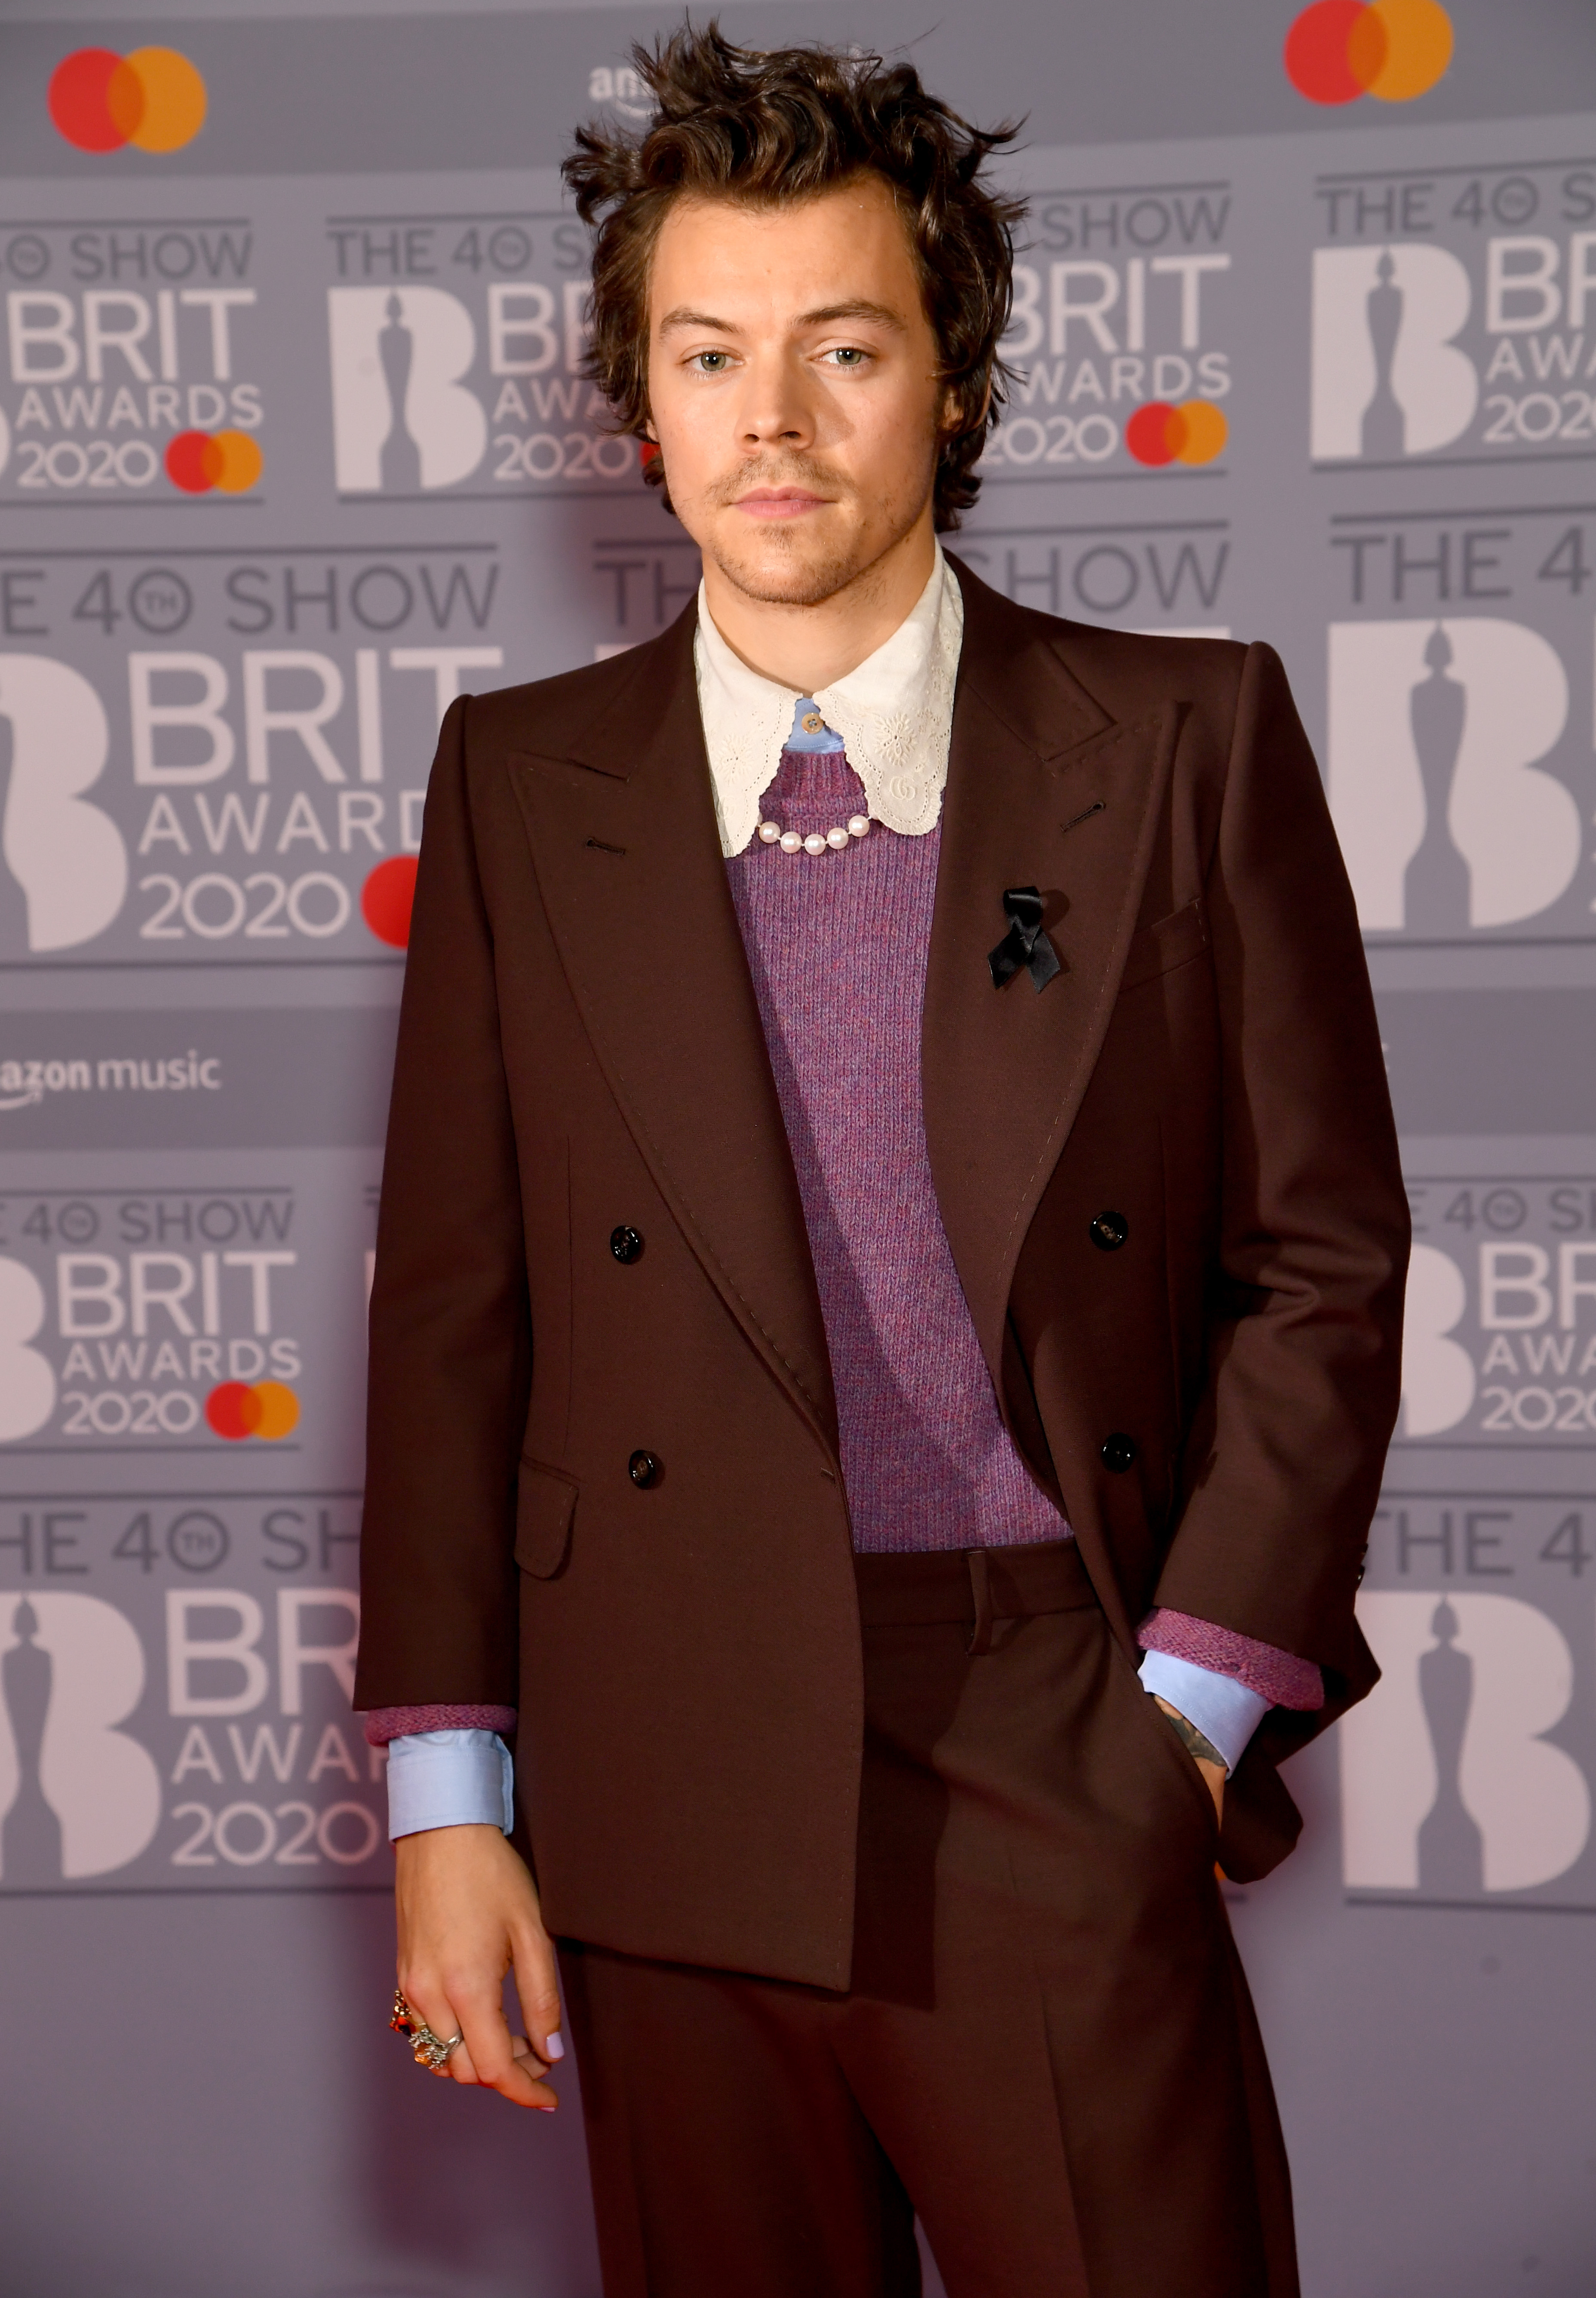 Harry Styles attends The BRIT Awards 2020 at The O2 Arena on February 18, 2020 in London, England. (Photo by Dave J Hogan/Getty Images)